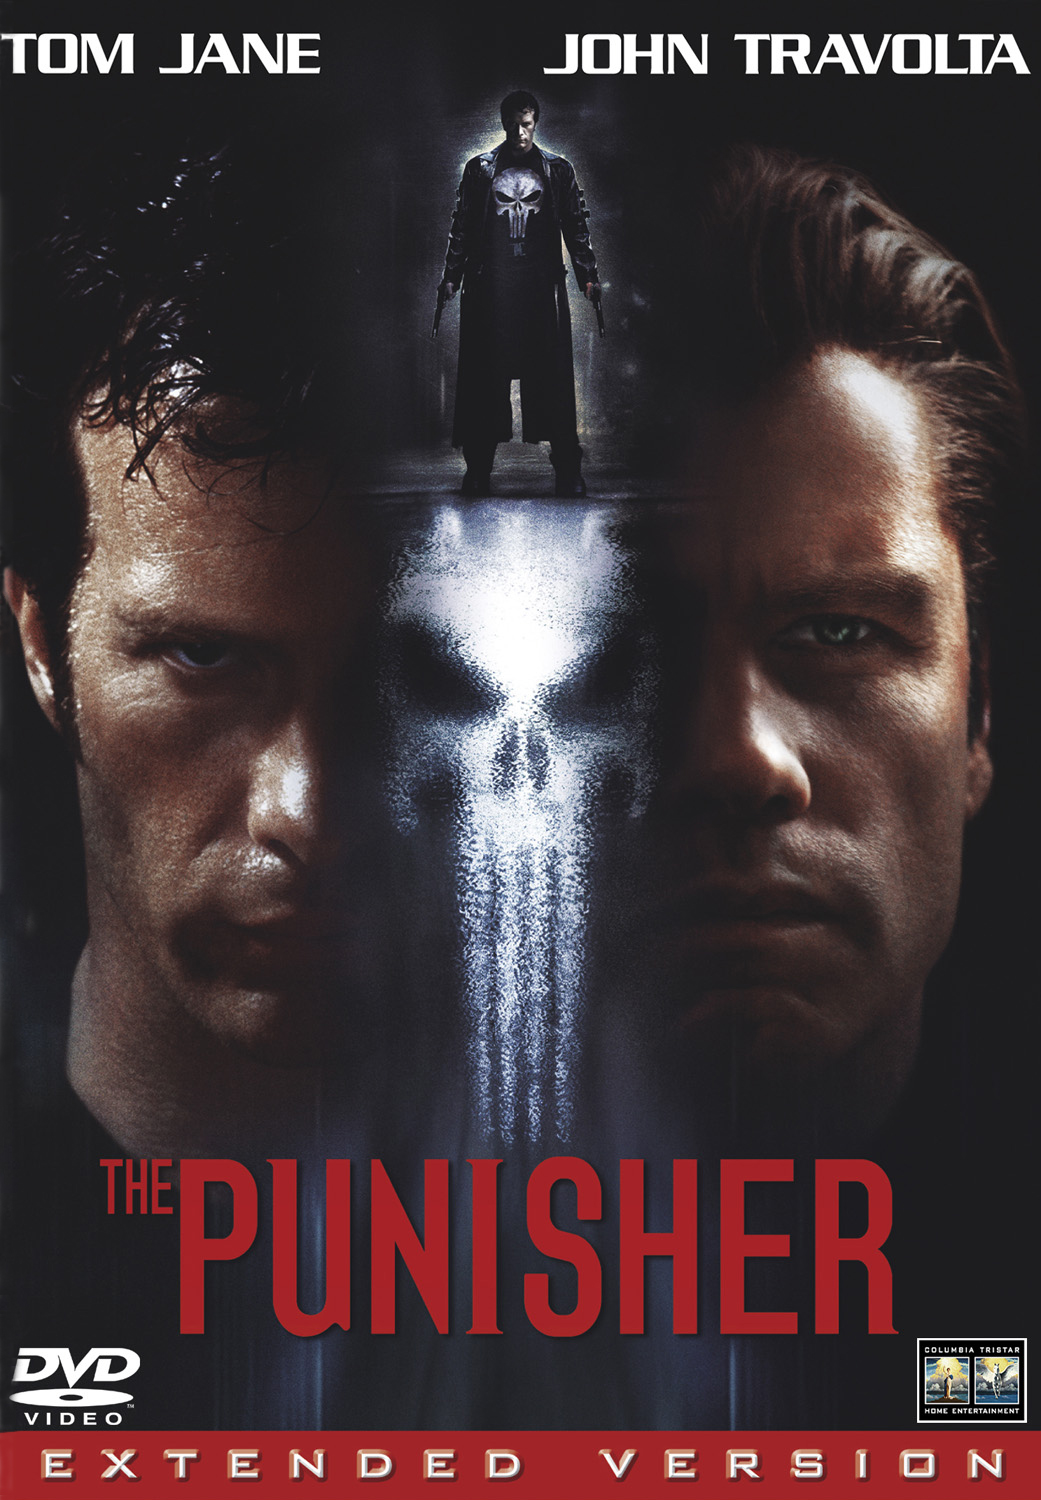 The Punisher (Extended Version) Poster